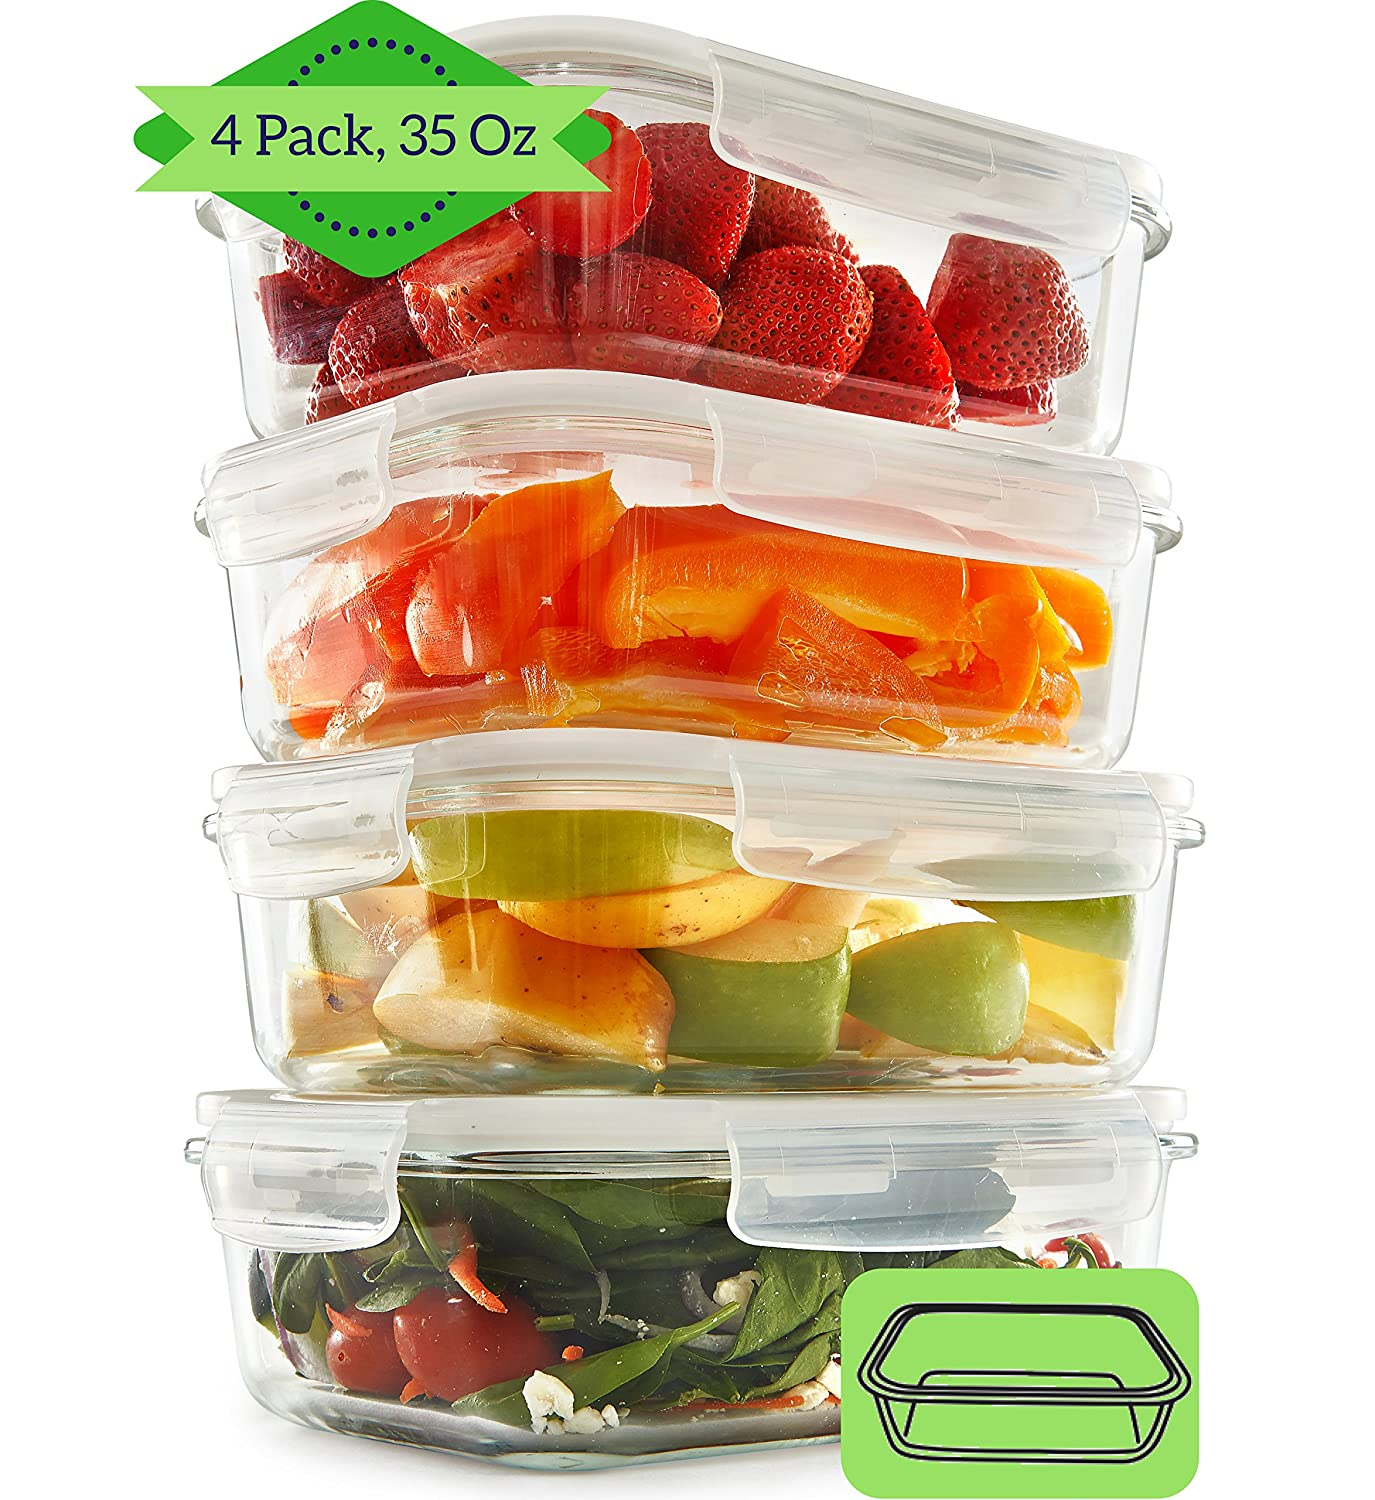 Glass Meal Prep Containers (4 Pack, 1000 ML) - 1 Compartment Food Storage Containers with Vented Lids | Portion Control | BPA Free, Microwave, Oven and Dishwasher Safe | Airtight and Leakproof Reusable Food Containers FIT Strong & Healthy GlassContainerSe